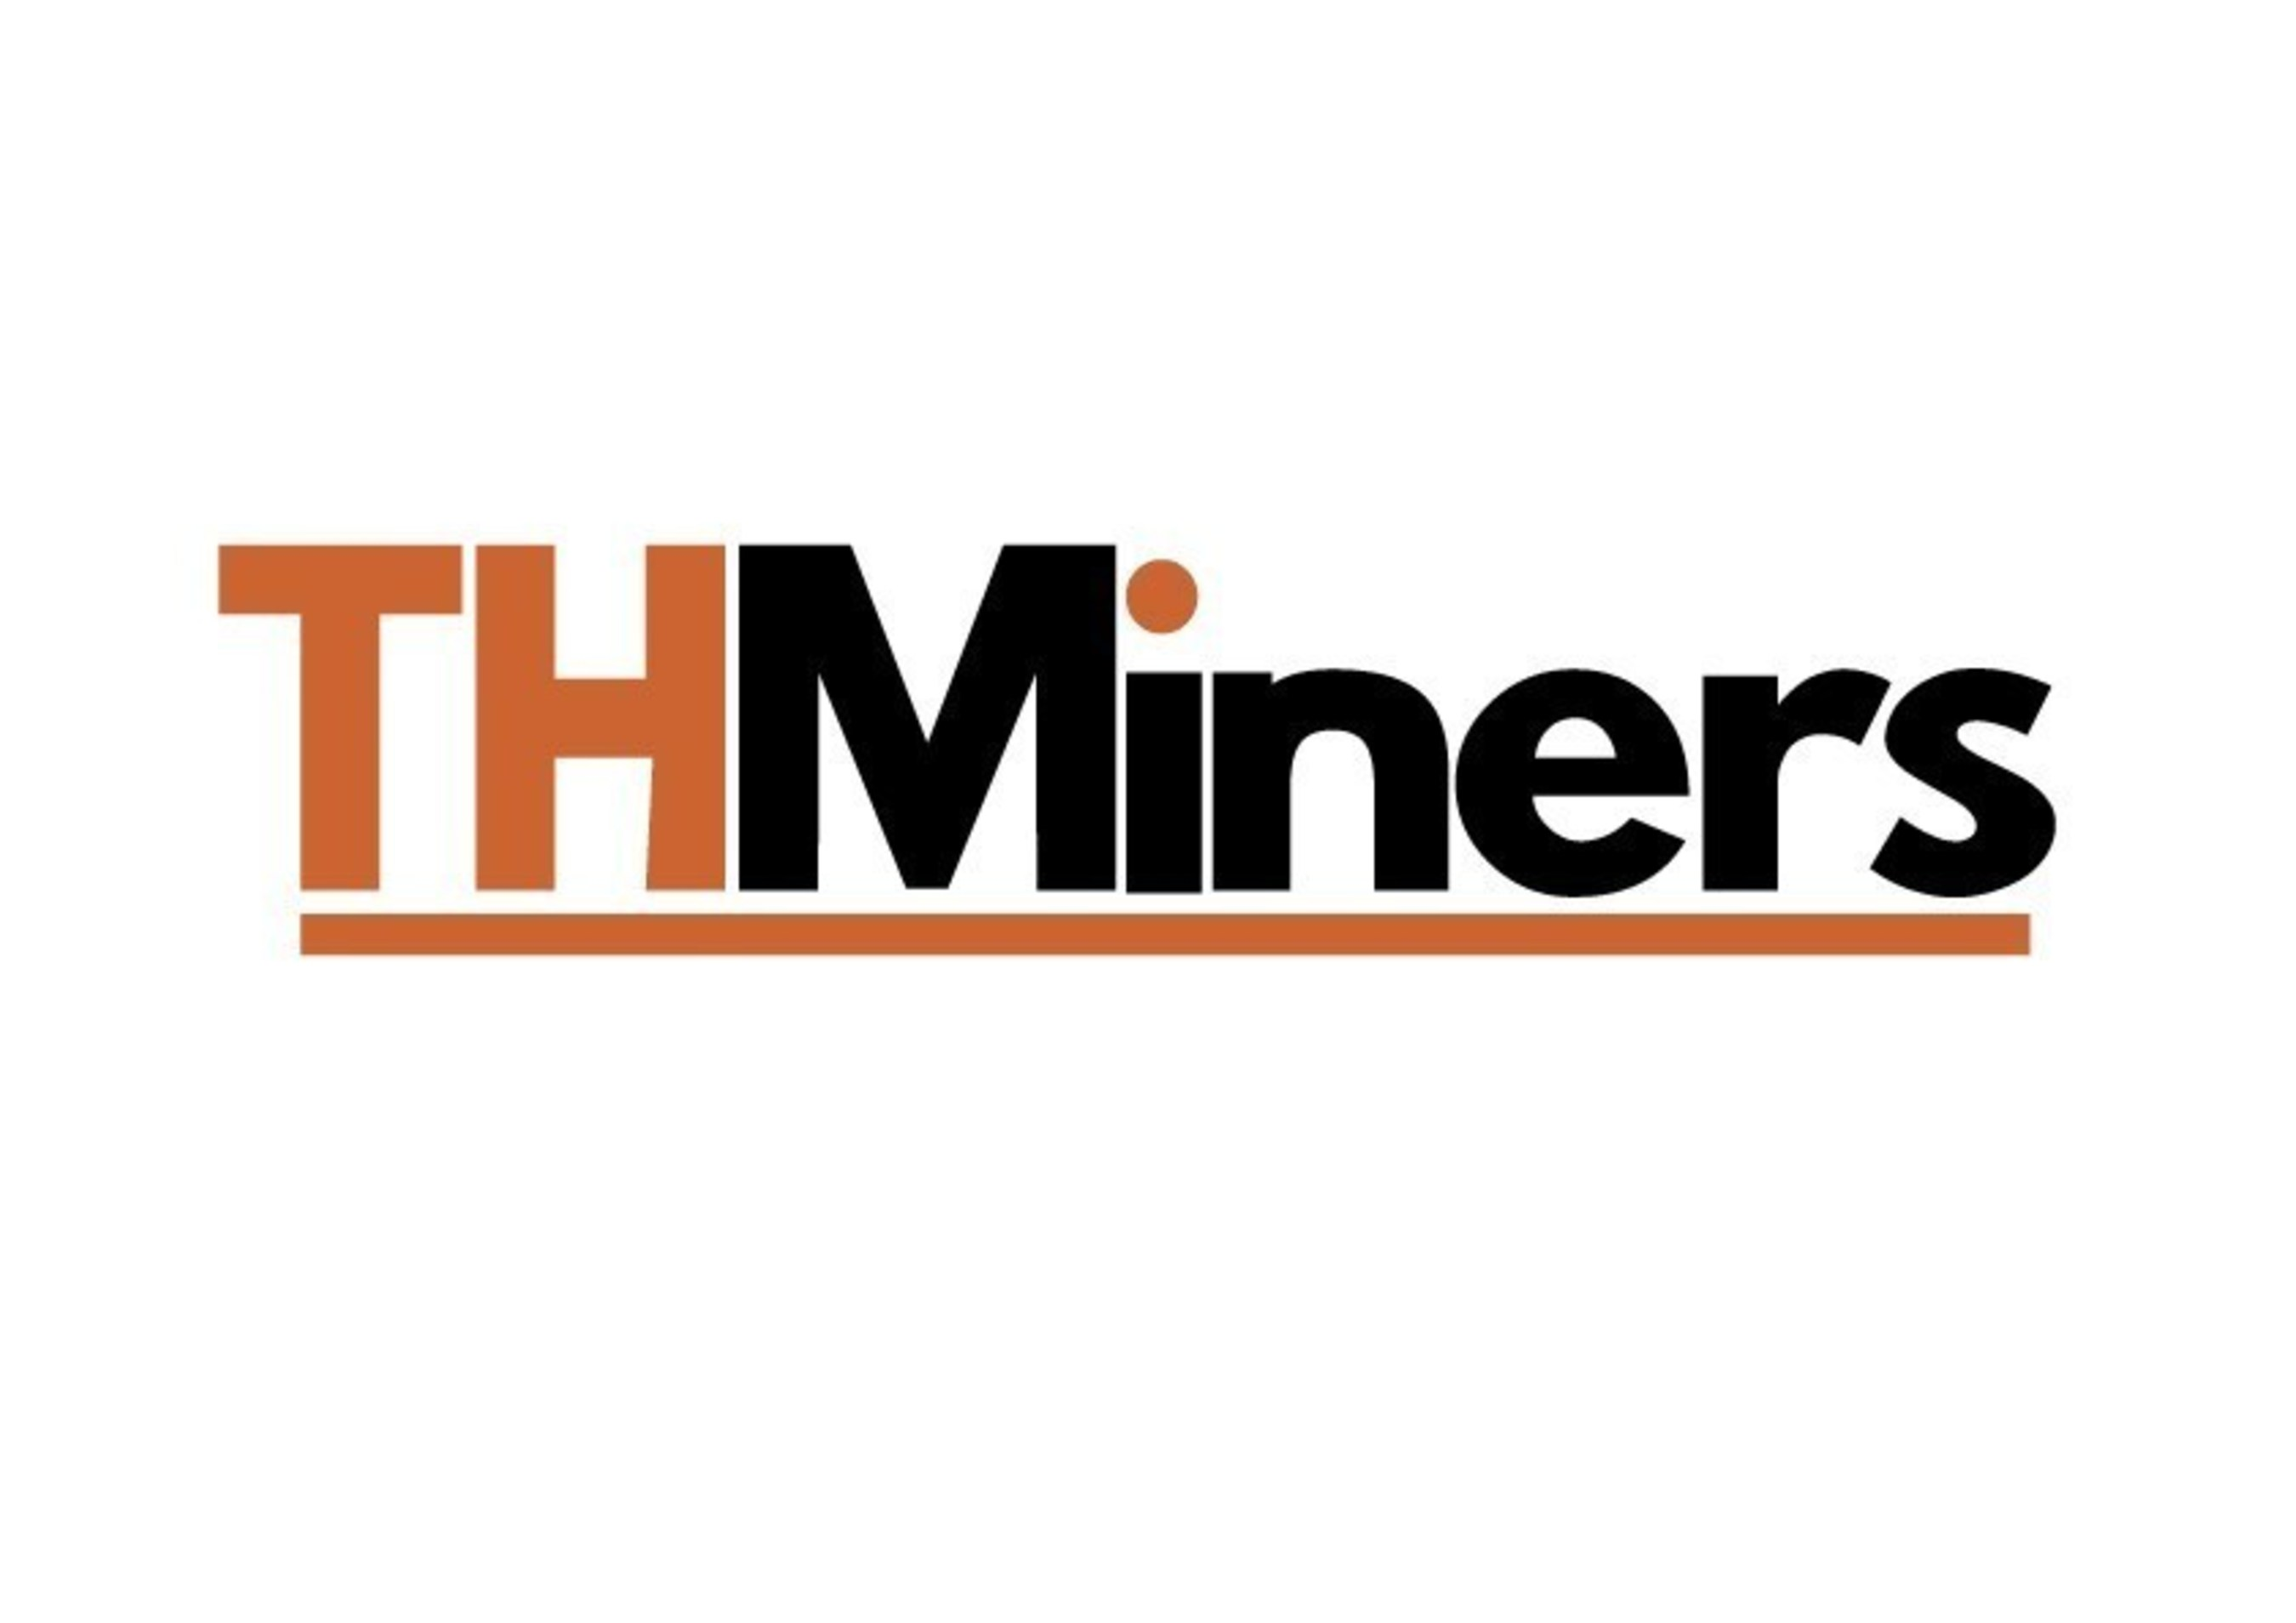 THMiners Announces the Launch of Two New Cryptocurrency Miners